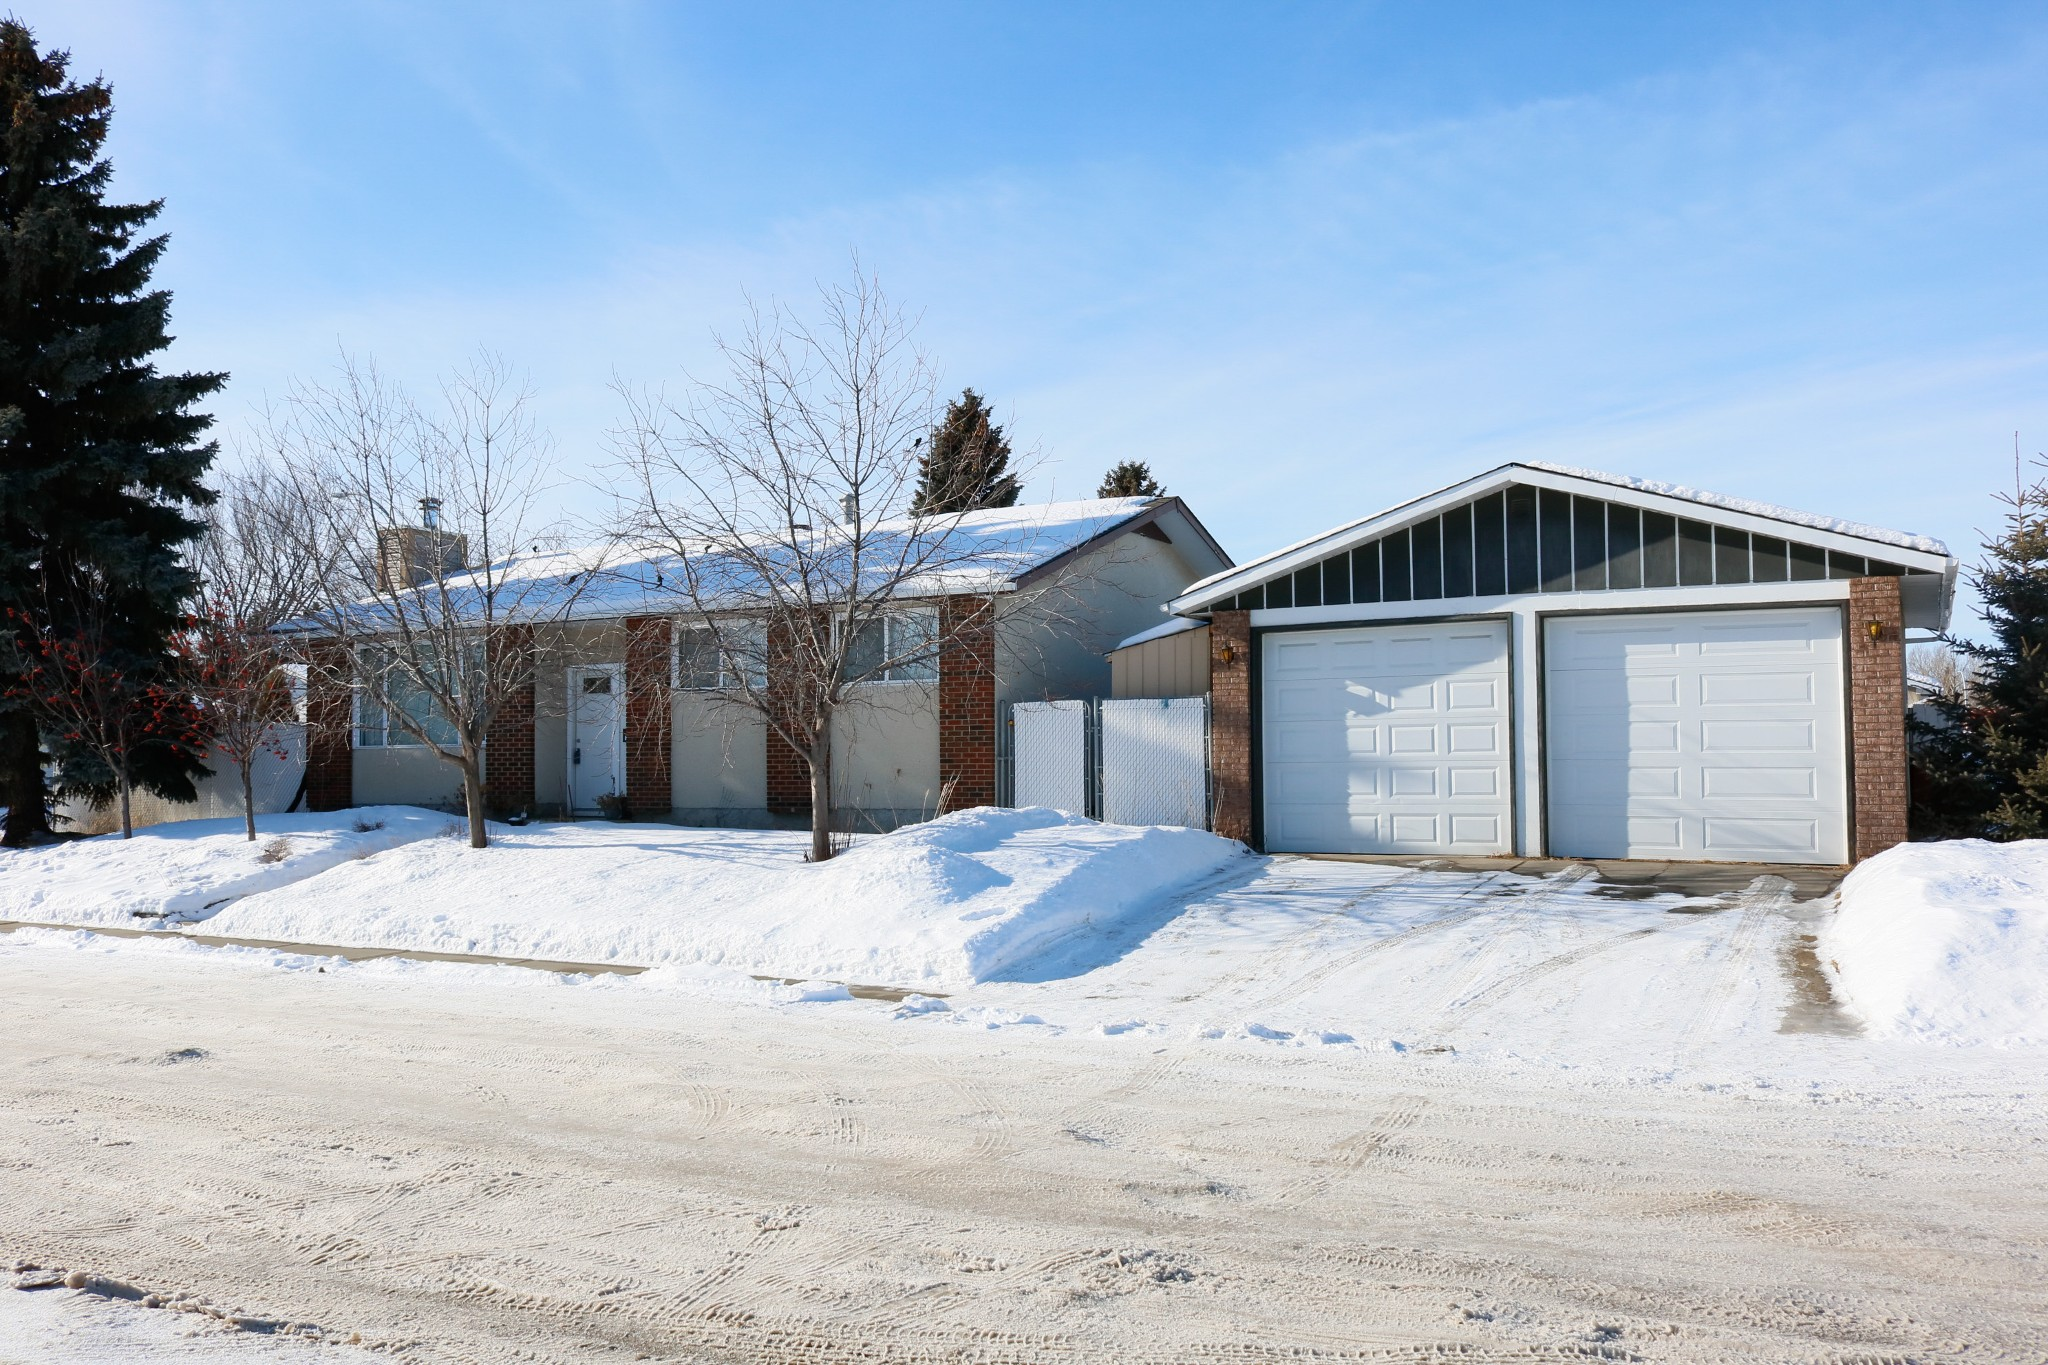 FEATURED LISTING: 14504 117 Street Northwest Edmonton